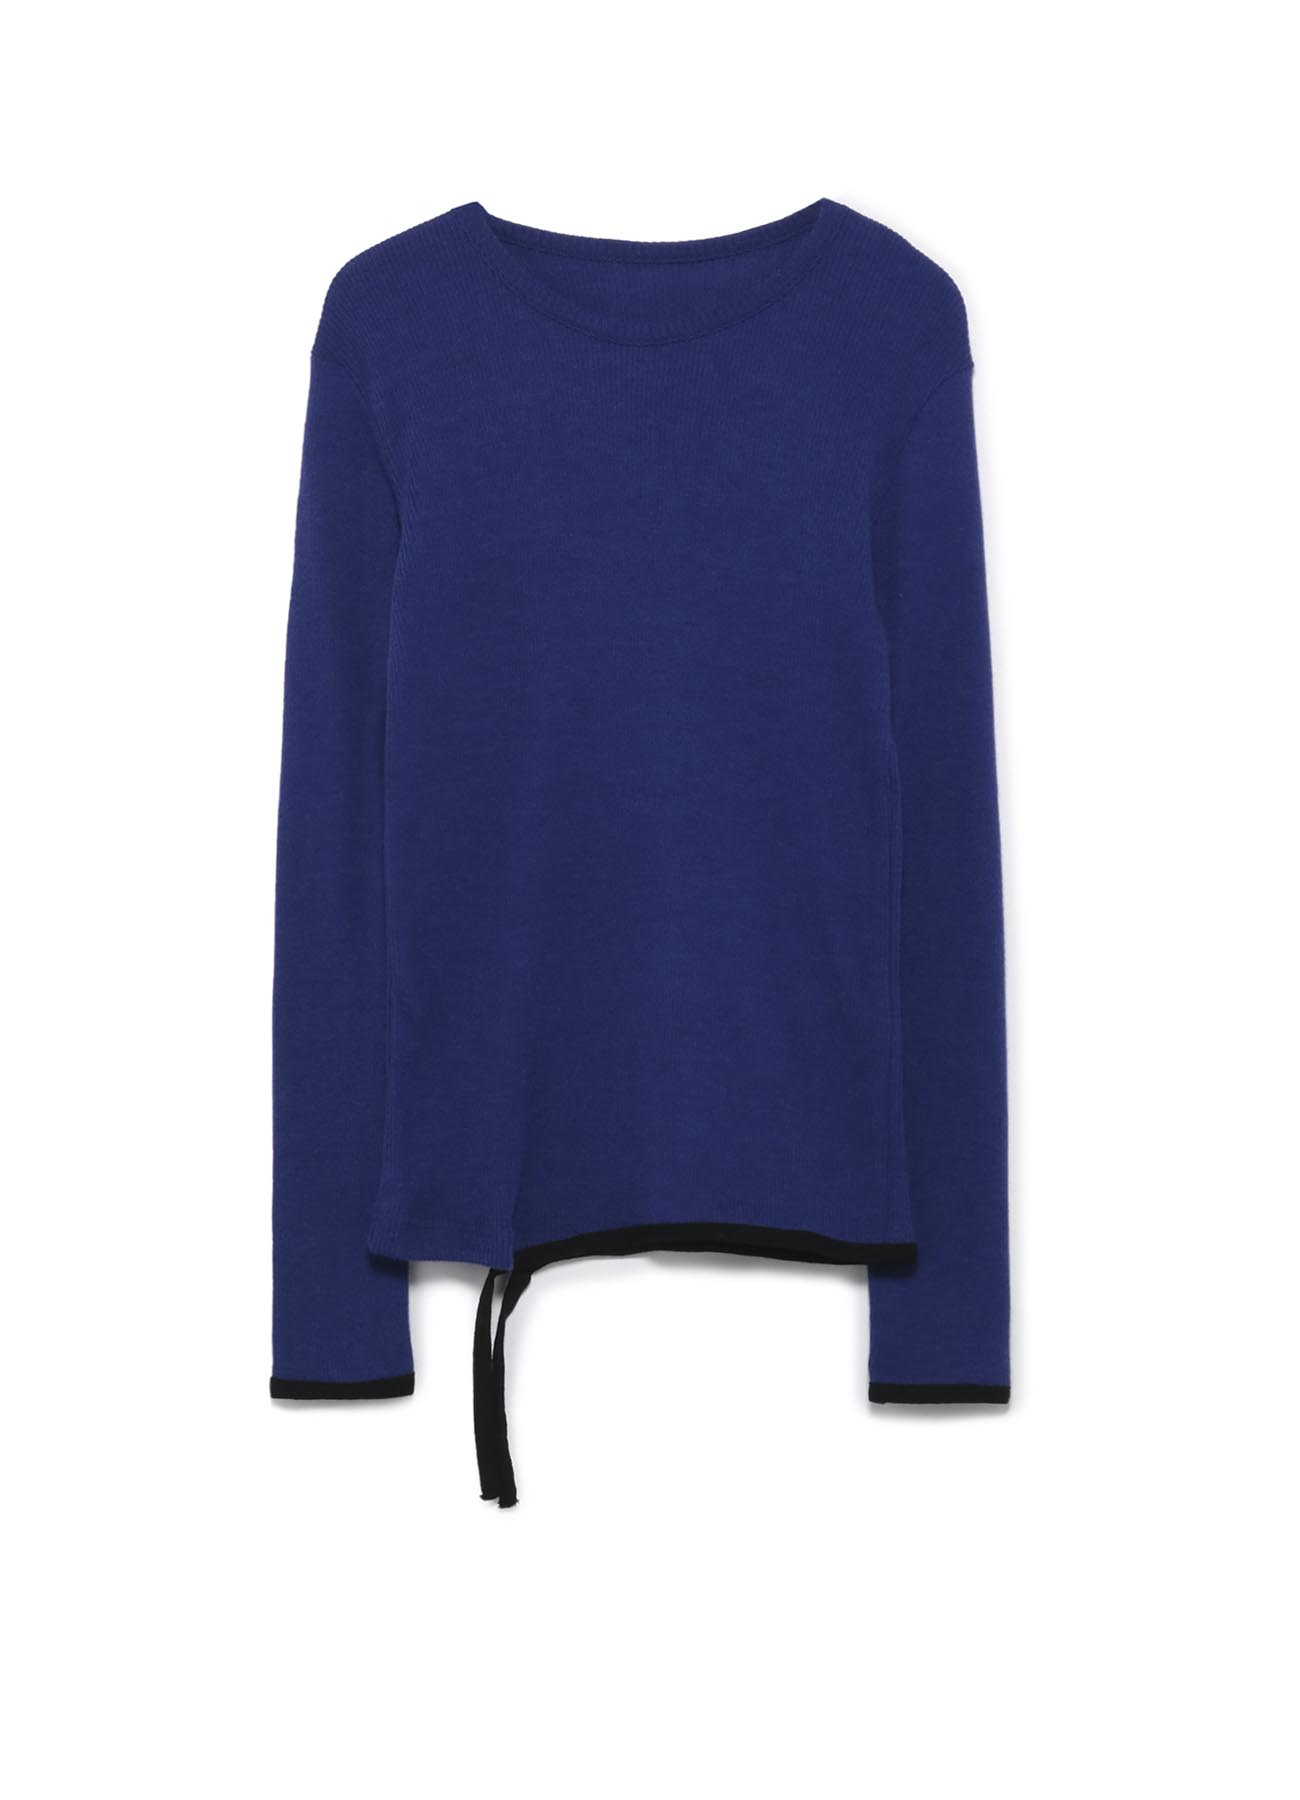 ANGORA WOOL RIB STITCH KNIT TAPE LONG SLEEVE T-SHIRT